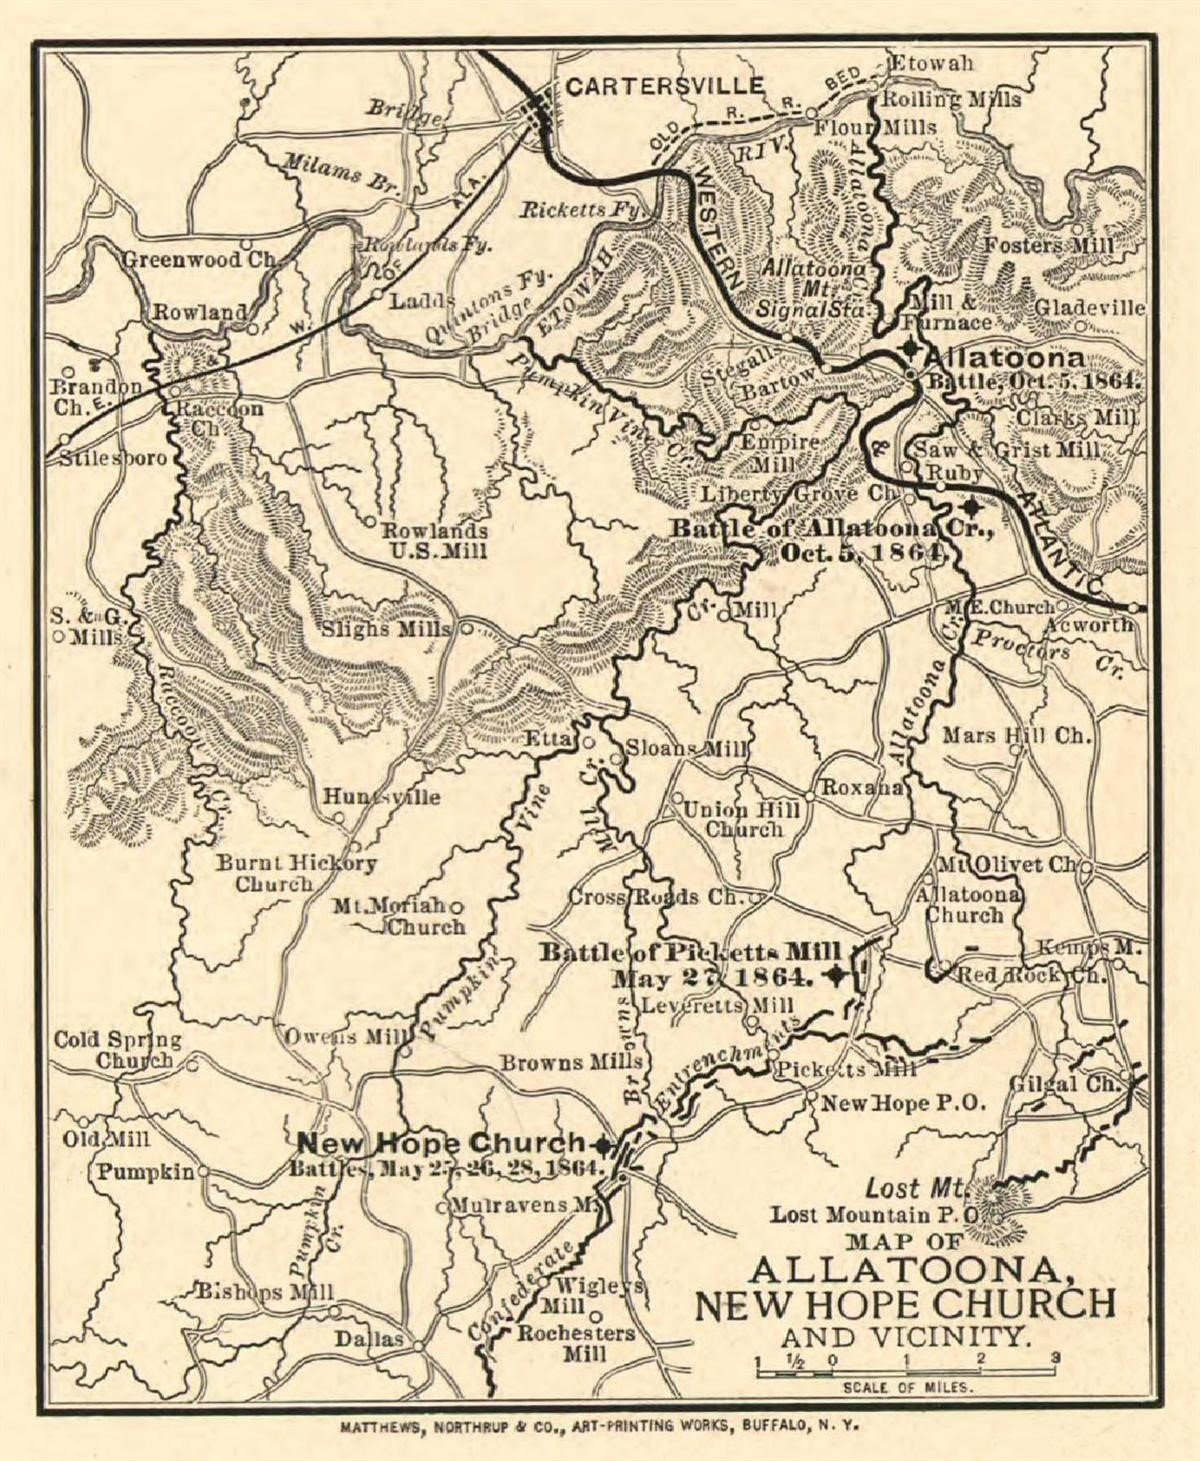 This is a map of Georgia specifically focused around Allatoona and the New Hope Church area.